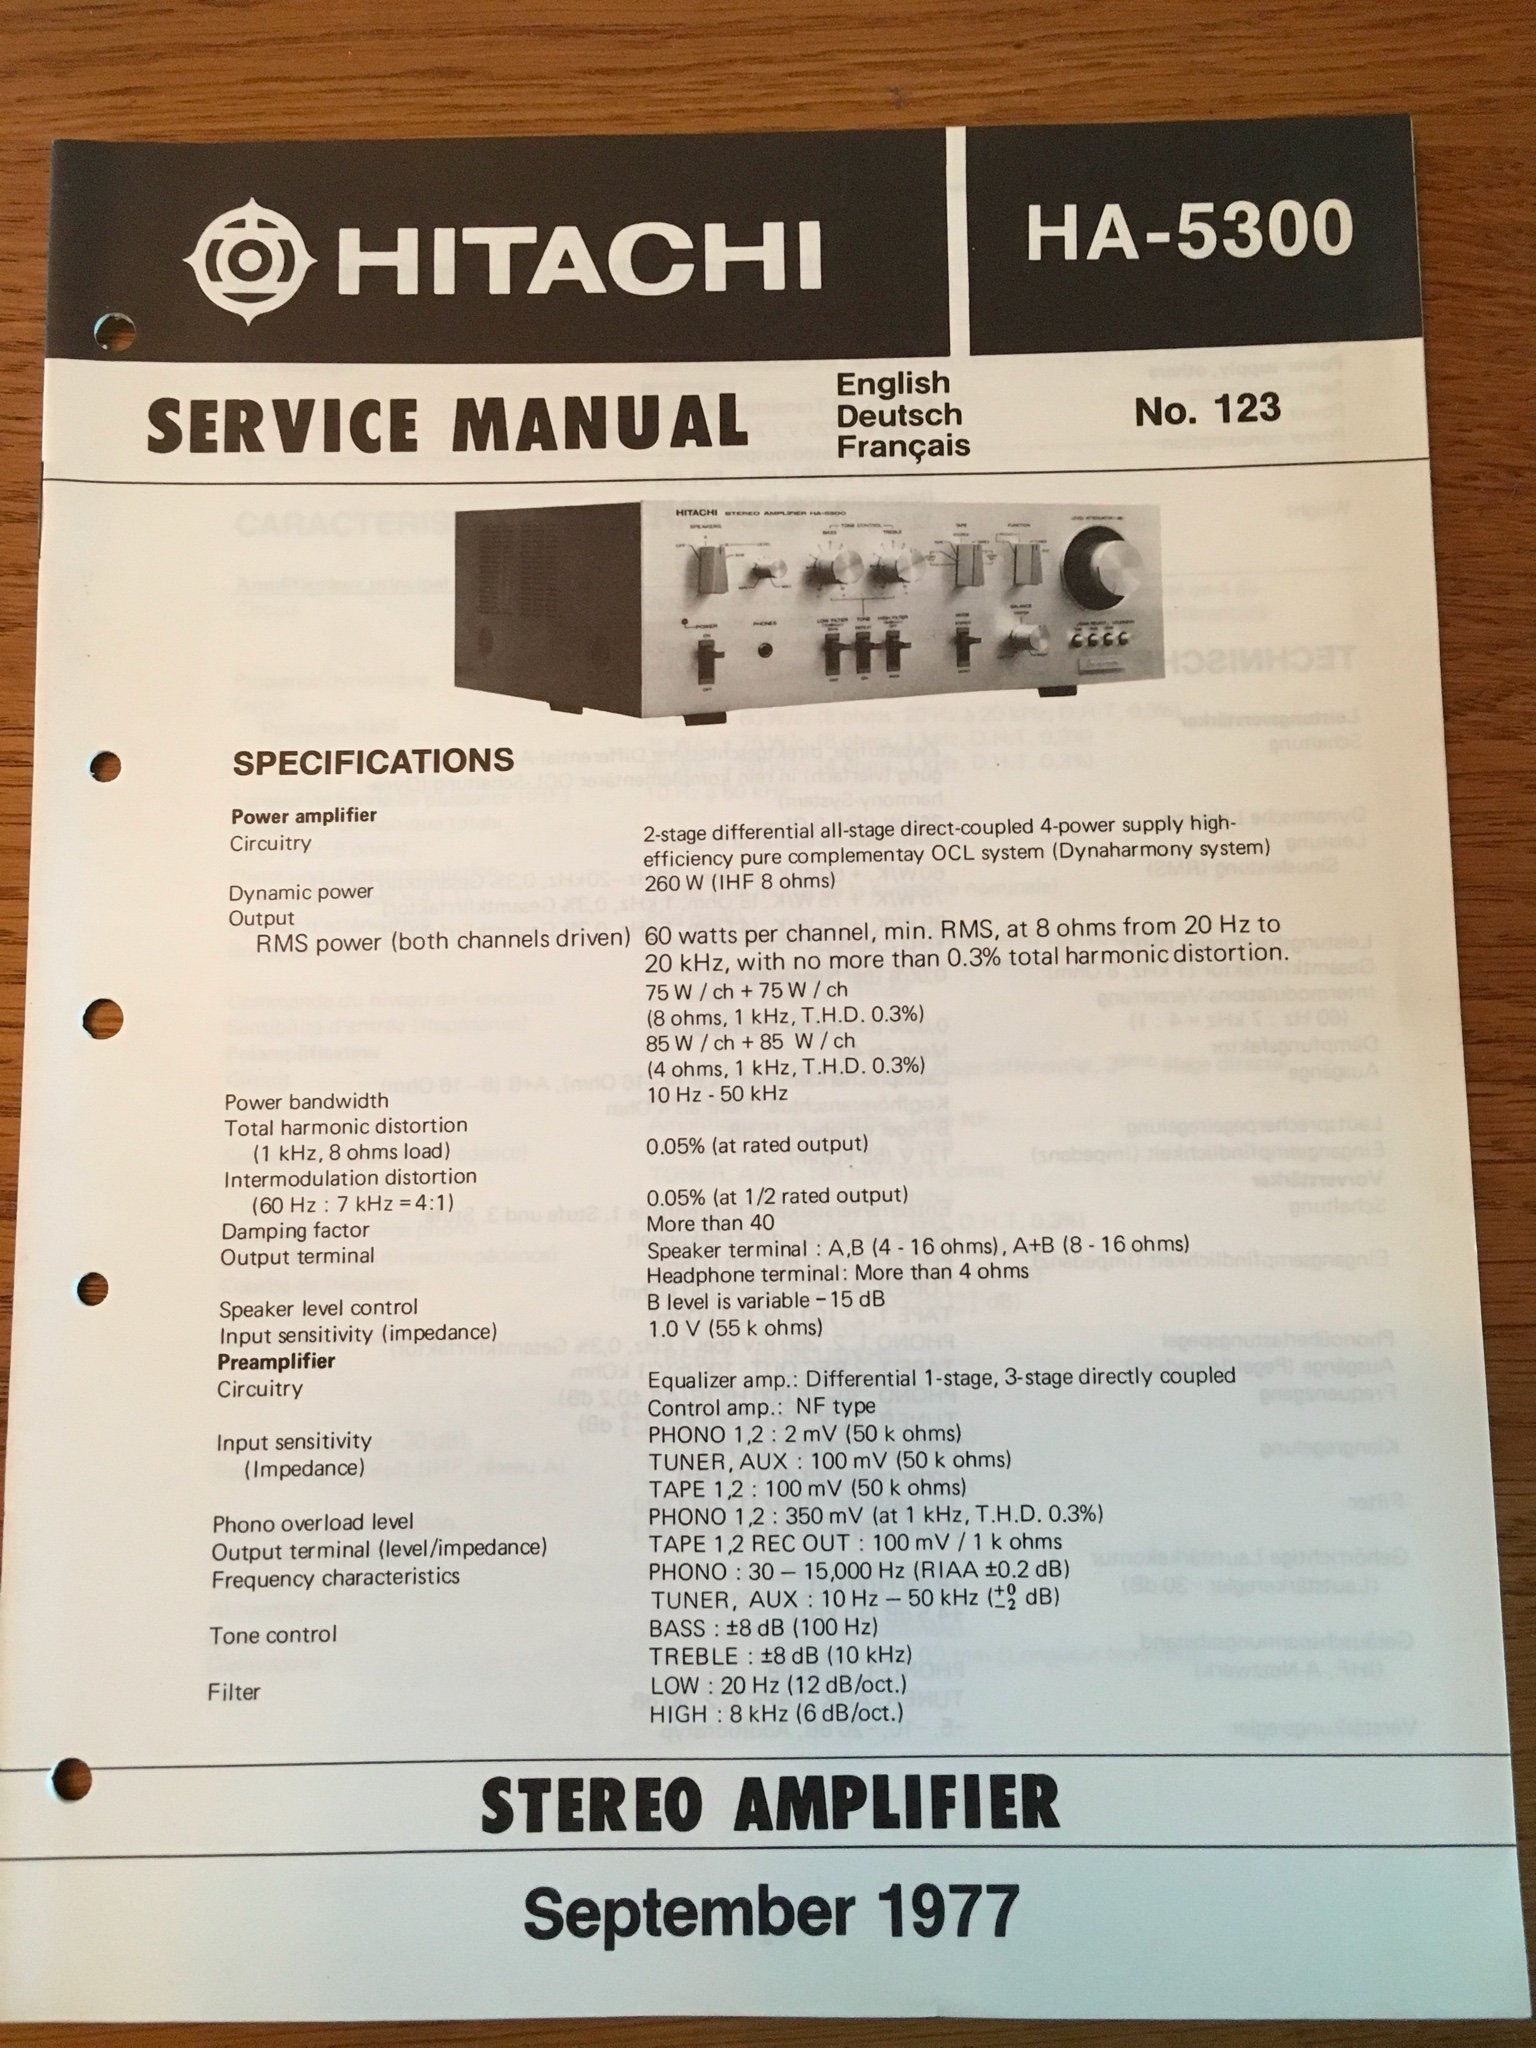 Service Manual Hitachi HA-5300